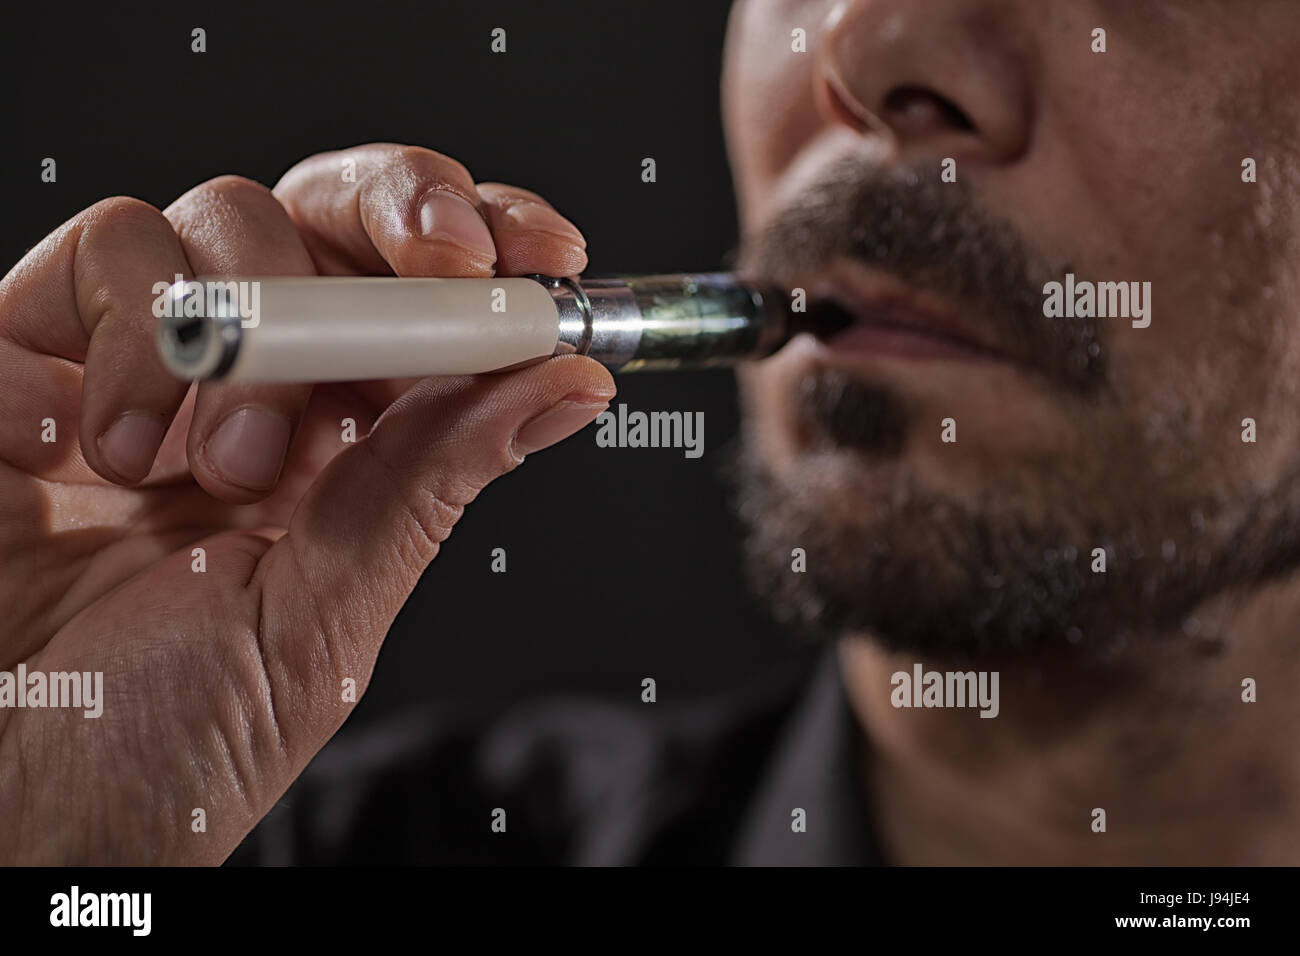 Close up image of man who is smoking electronic cigarette. - Stock Image